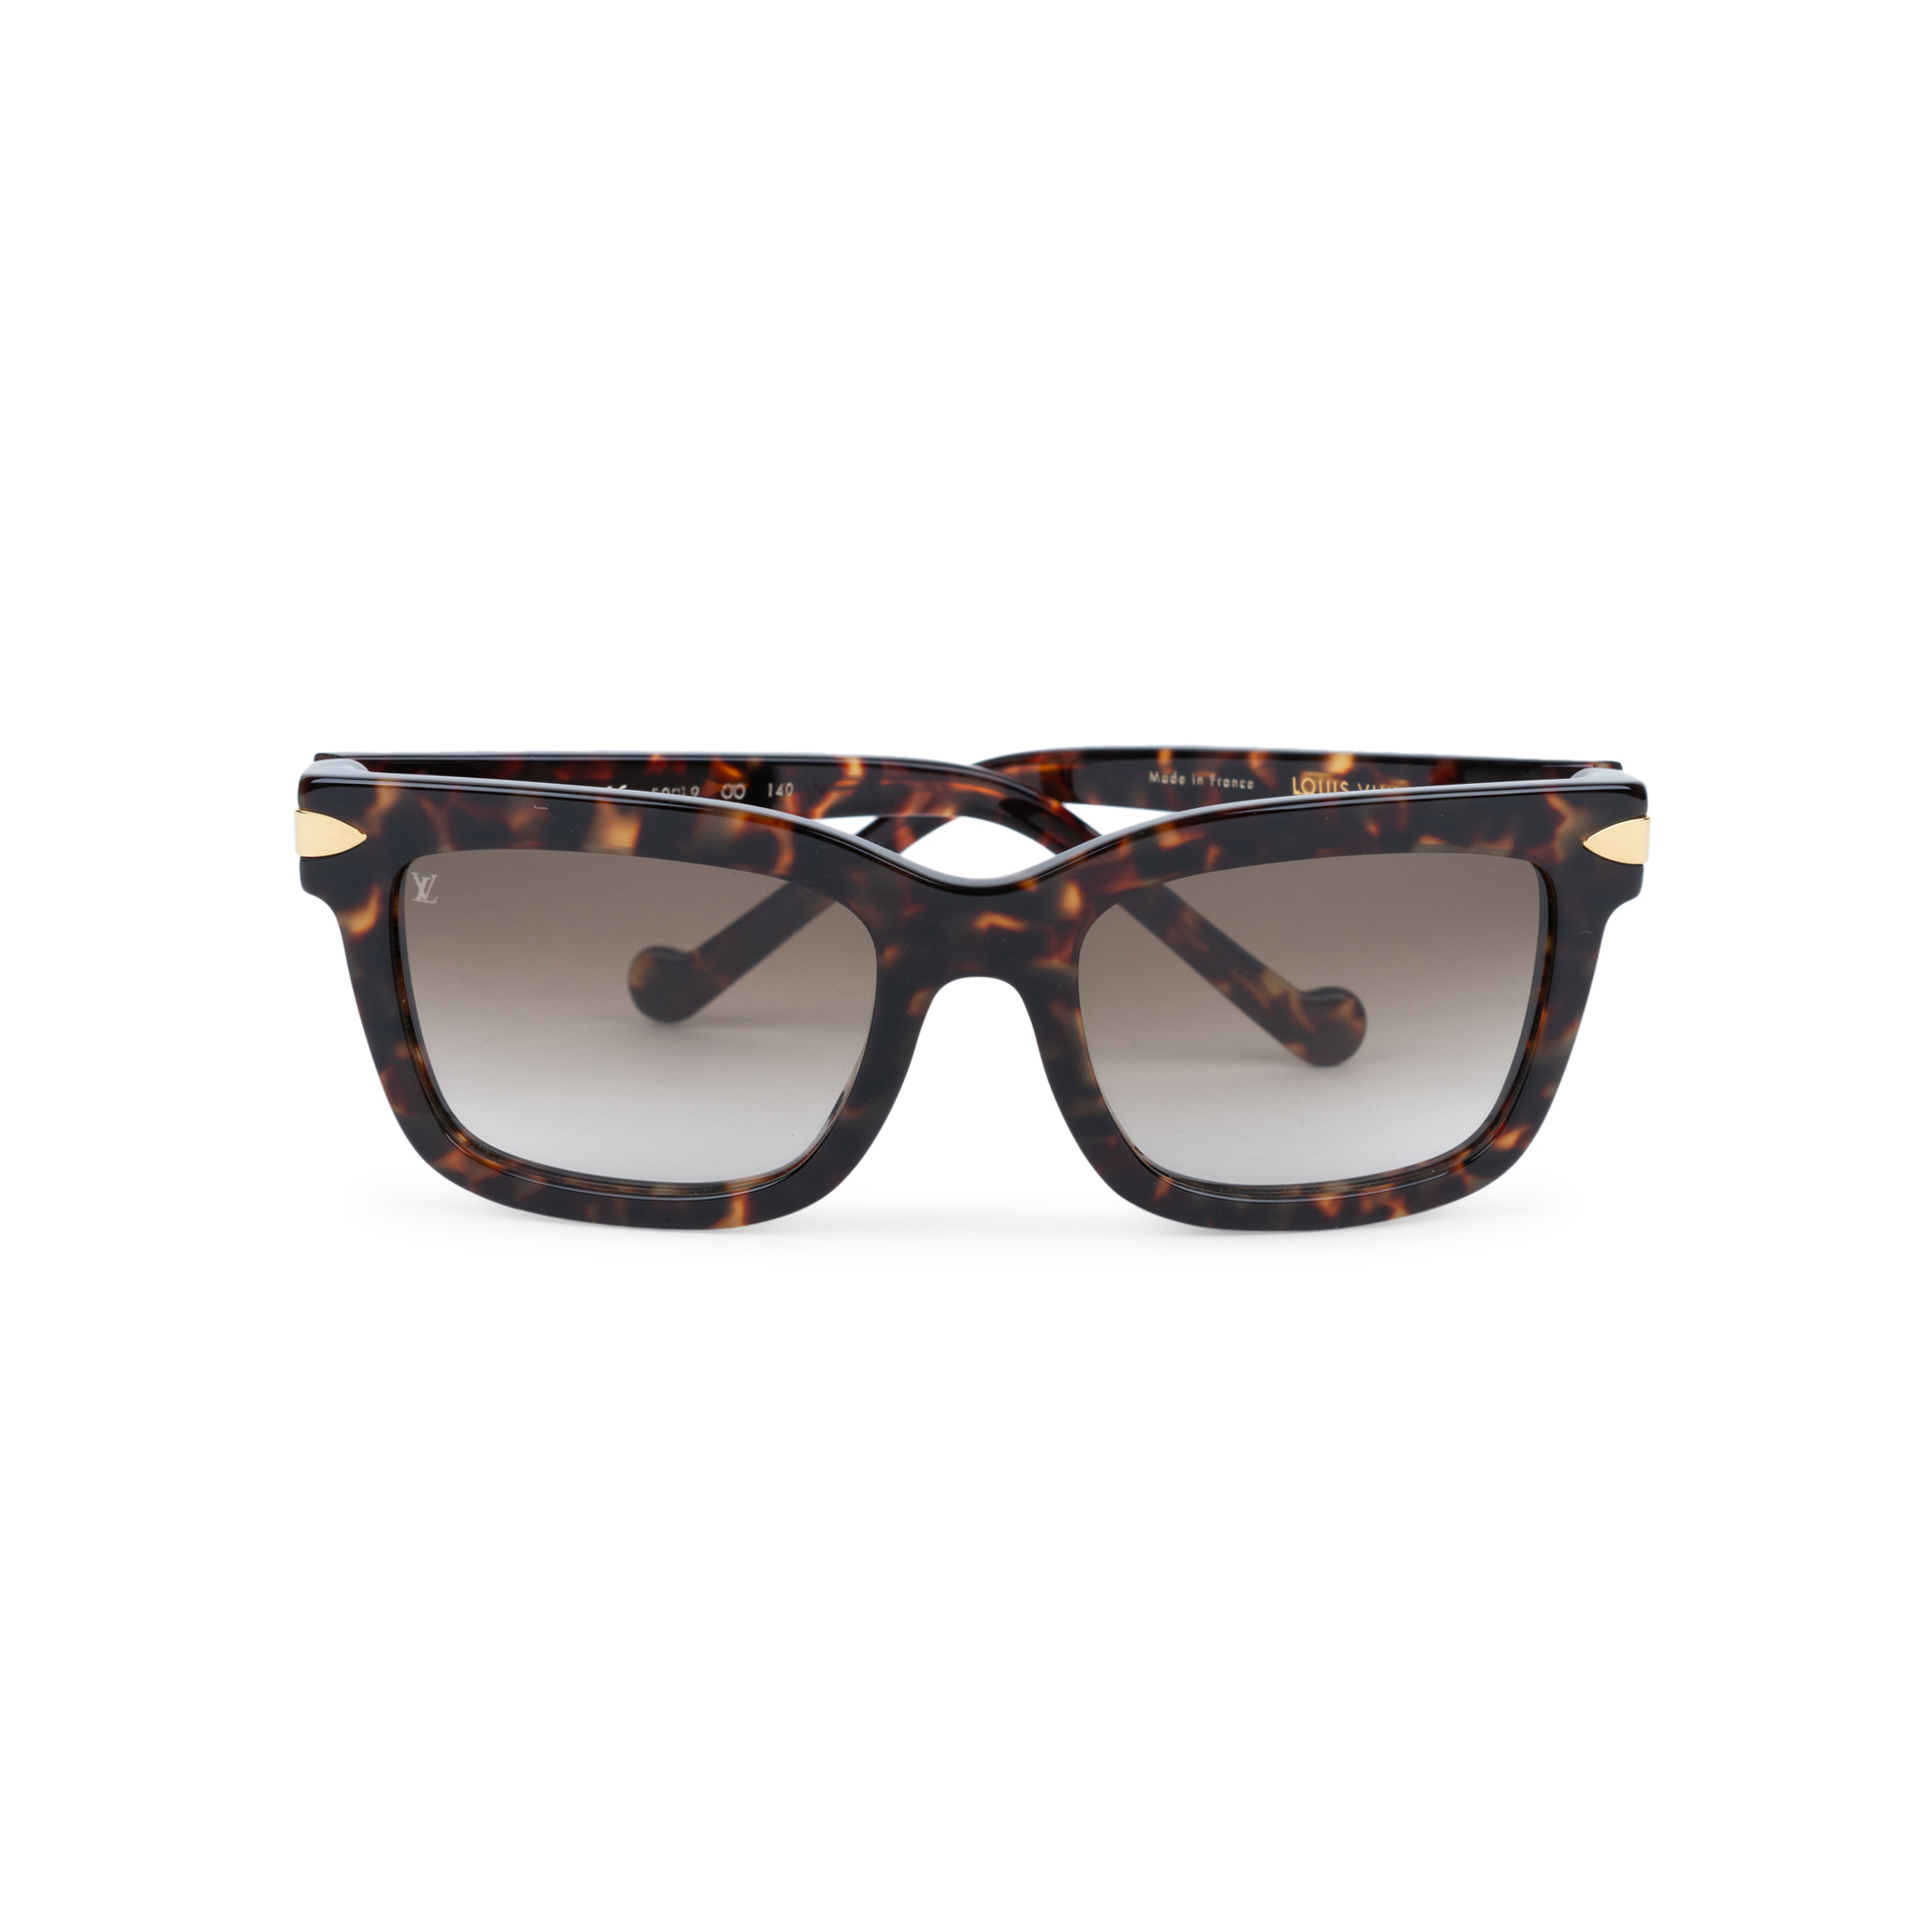 0f7452a64e Authentic Second Hand Louis Vuitton Tortoise Shell Sunglasses  (PSS-559-00006)